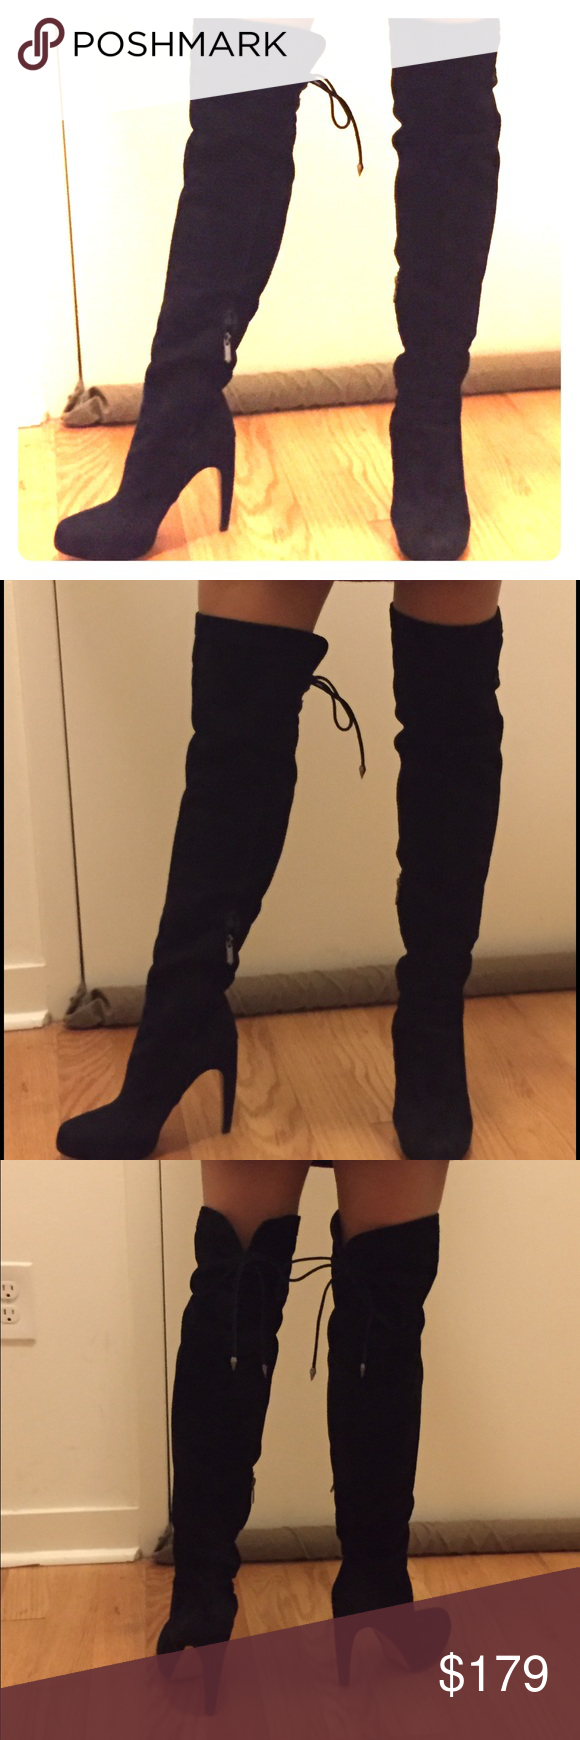 b432d42a1d1418 Sam Edelman Kayla Over The Knee Suede Boots These boots are amazing and  barely worn!